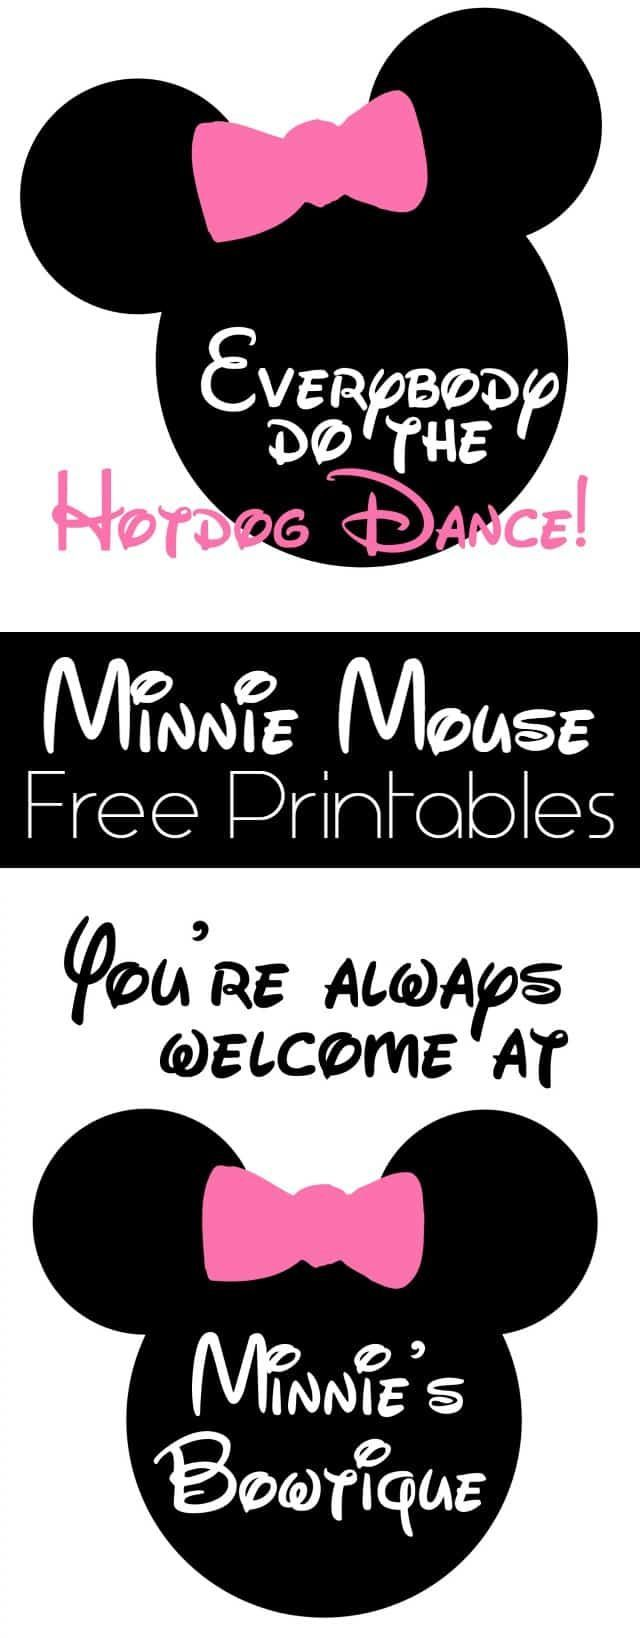 Minnie Mouse Birthday Party Details and Free Printables - Girl Loves Glam